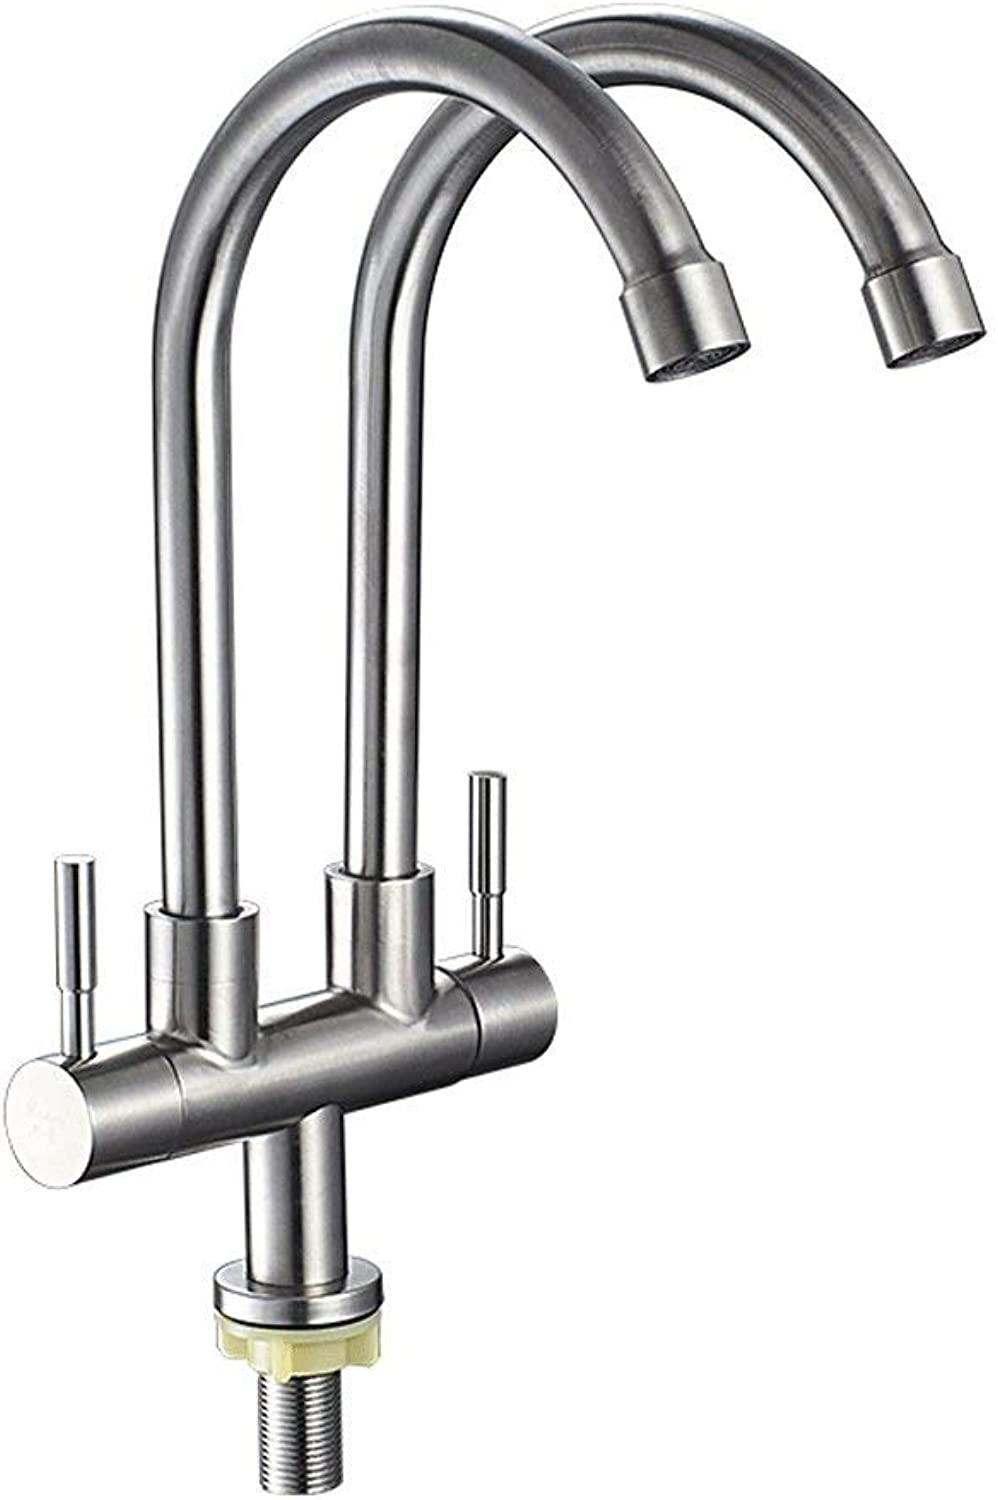 DYR Faucet Kitchen Faucet Single cold sink Sink faucet Can turn double tap Double digestions on the balcony Stainless steel faucet